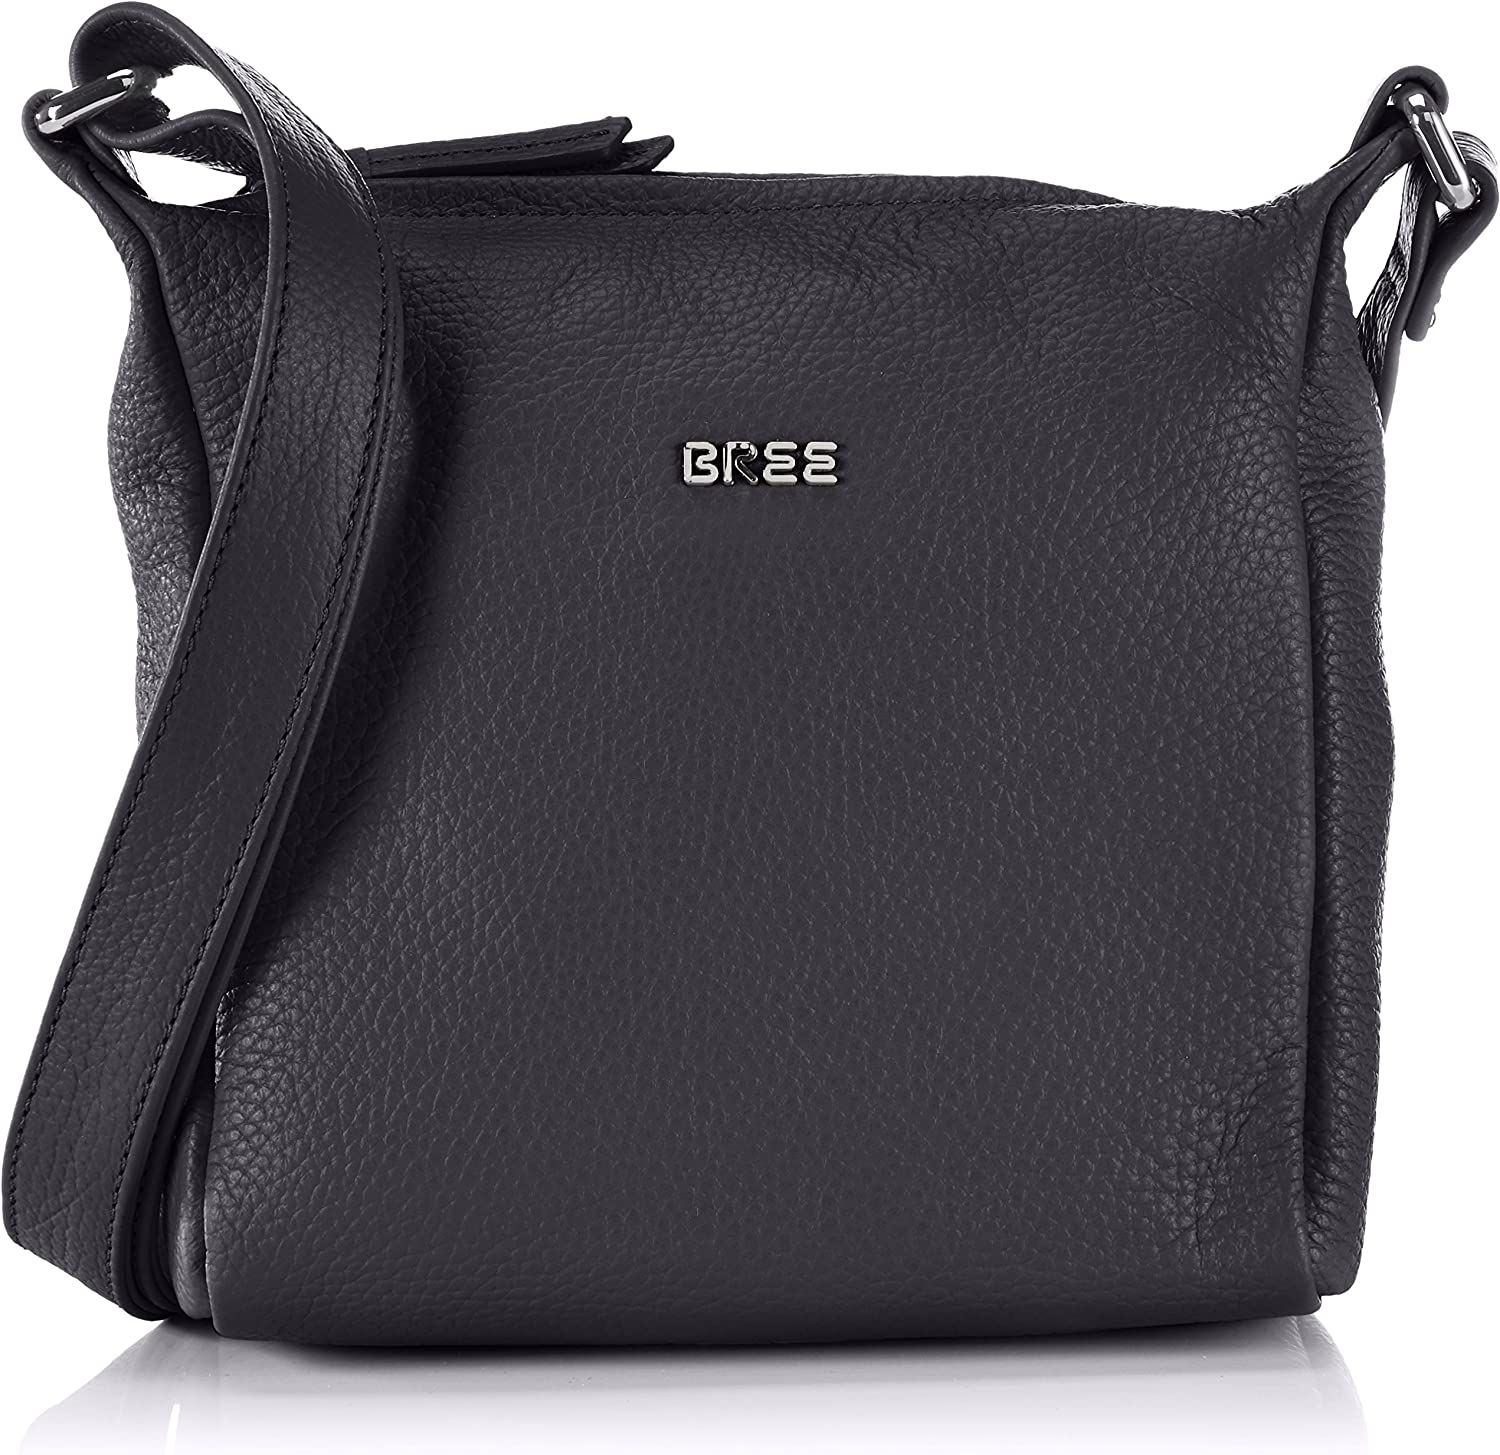 BREE Women 206001 TopHandle Bag